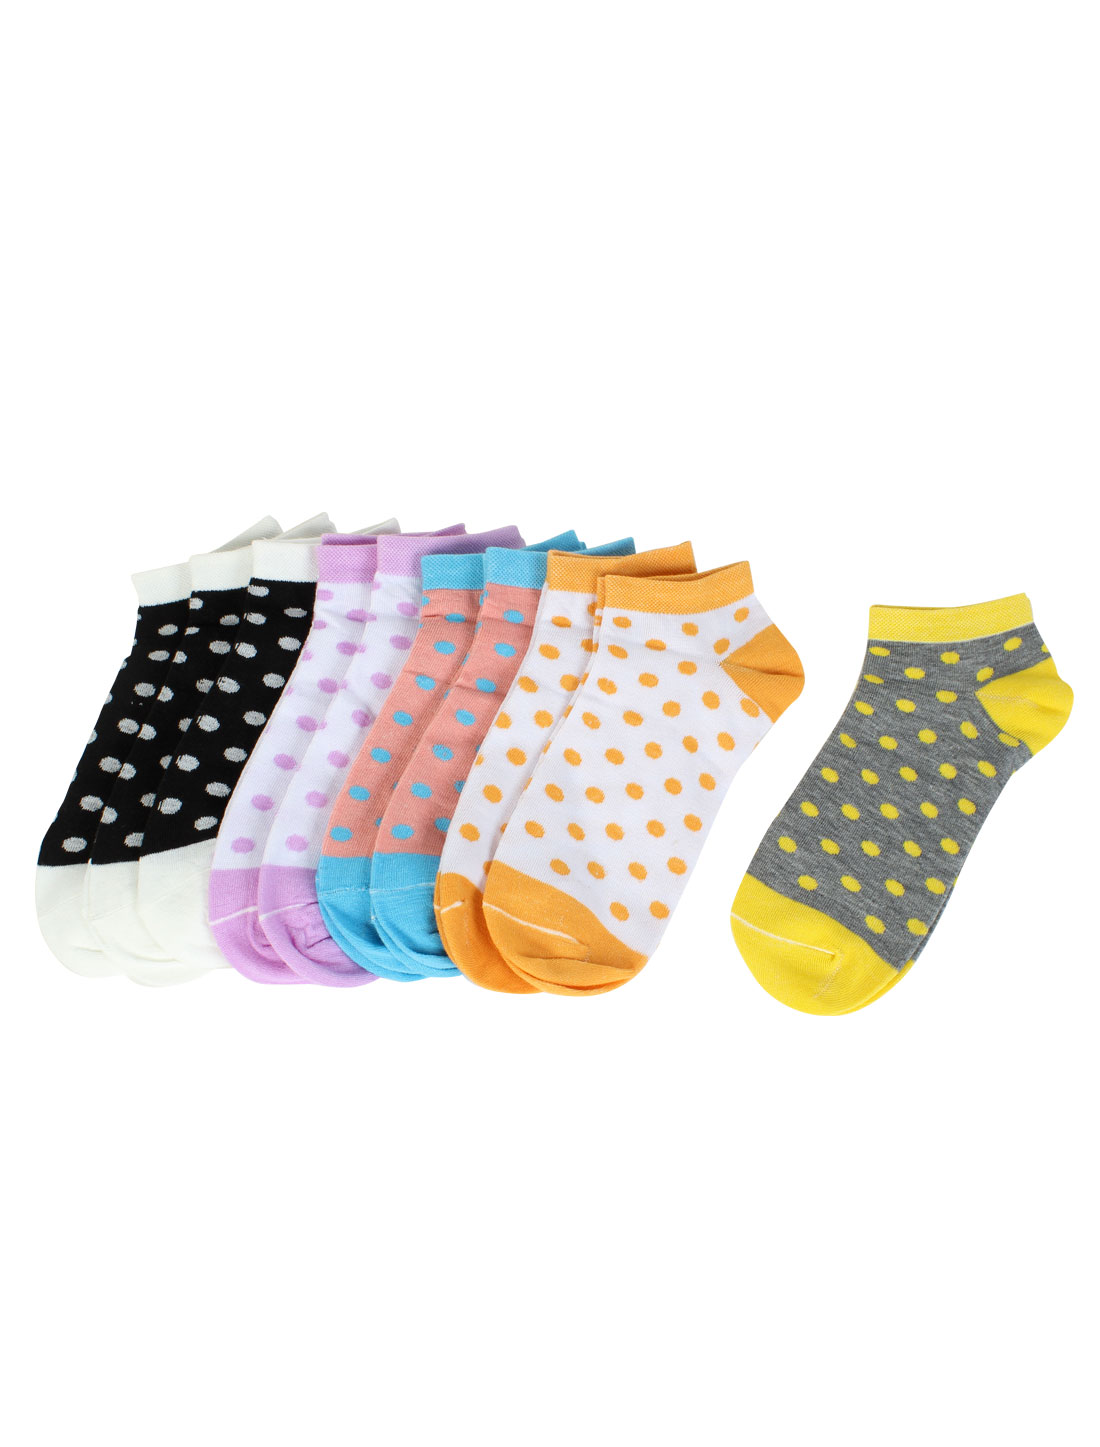 10 Pairs Multicolor Dot Print Knit Stretchy Low Cut Casual Ankle Socks